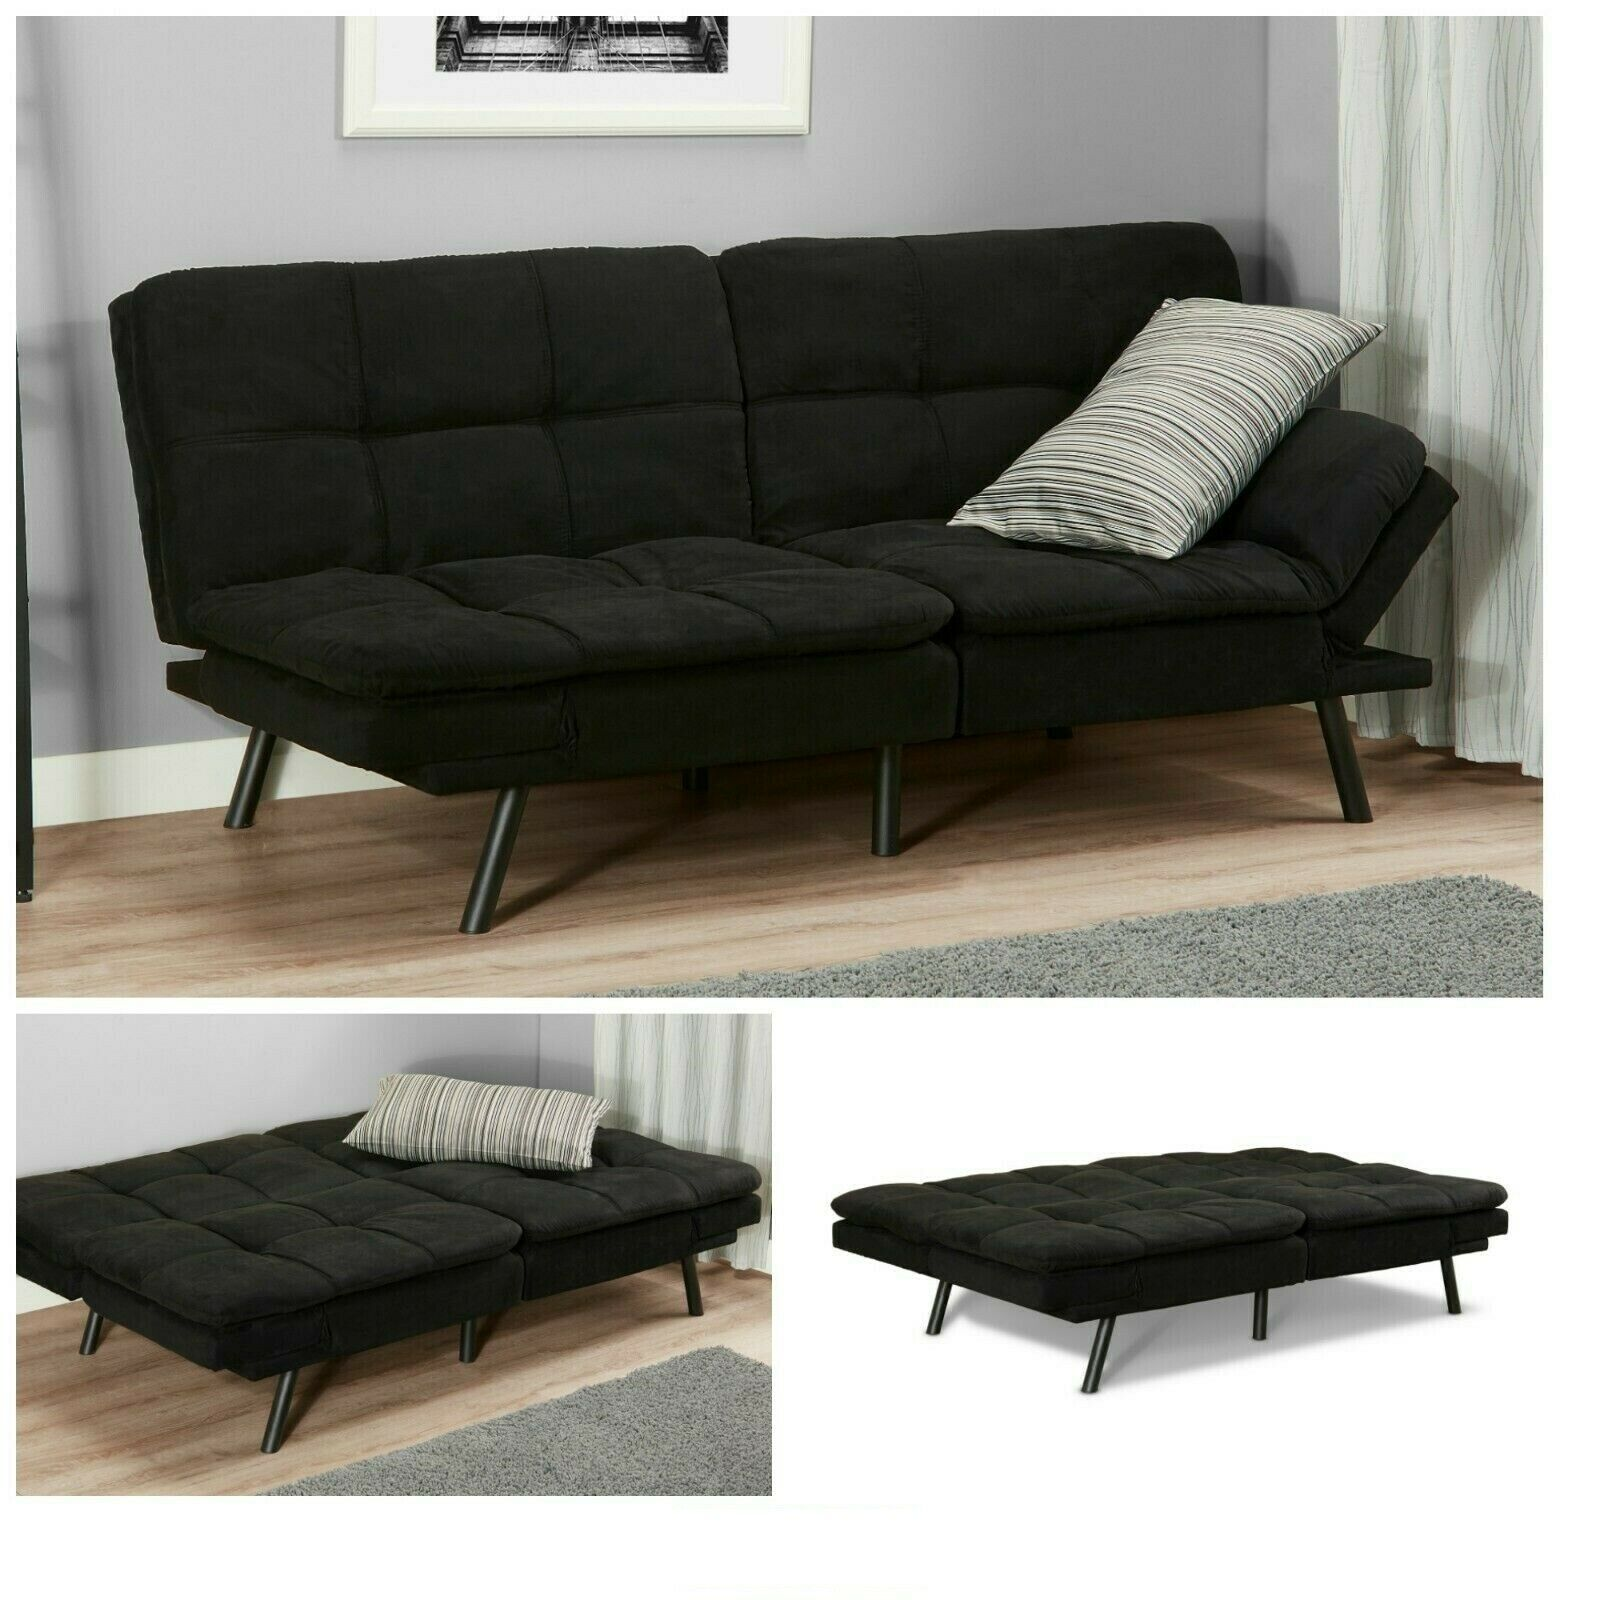 Picture of: Modern Convertible Futon Sofa Bed Full Size Sleeper Microfiber Living Room Wood For Sale Online Ebay